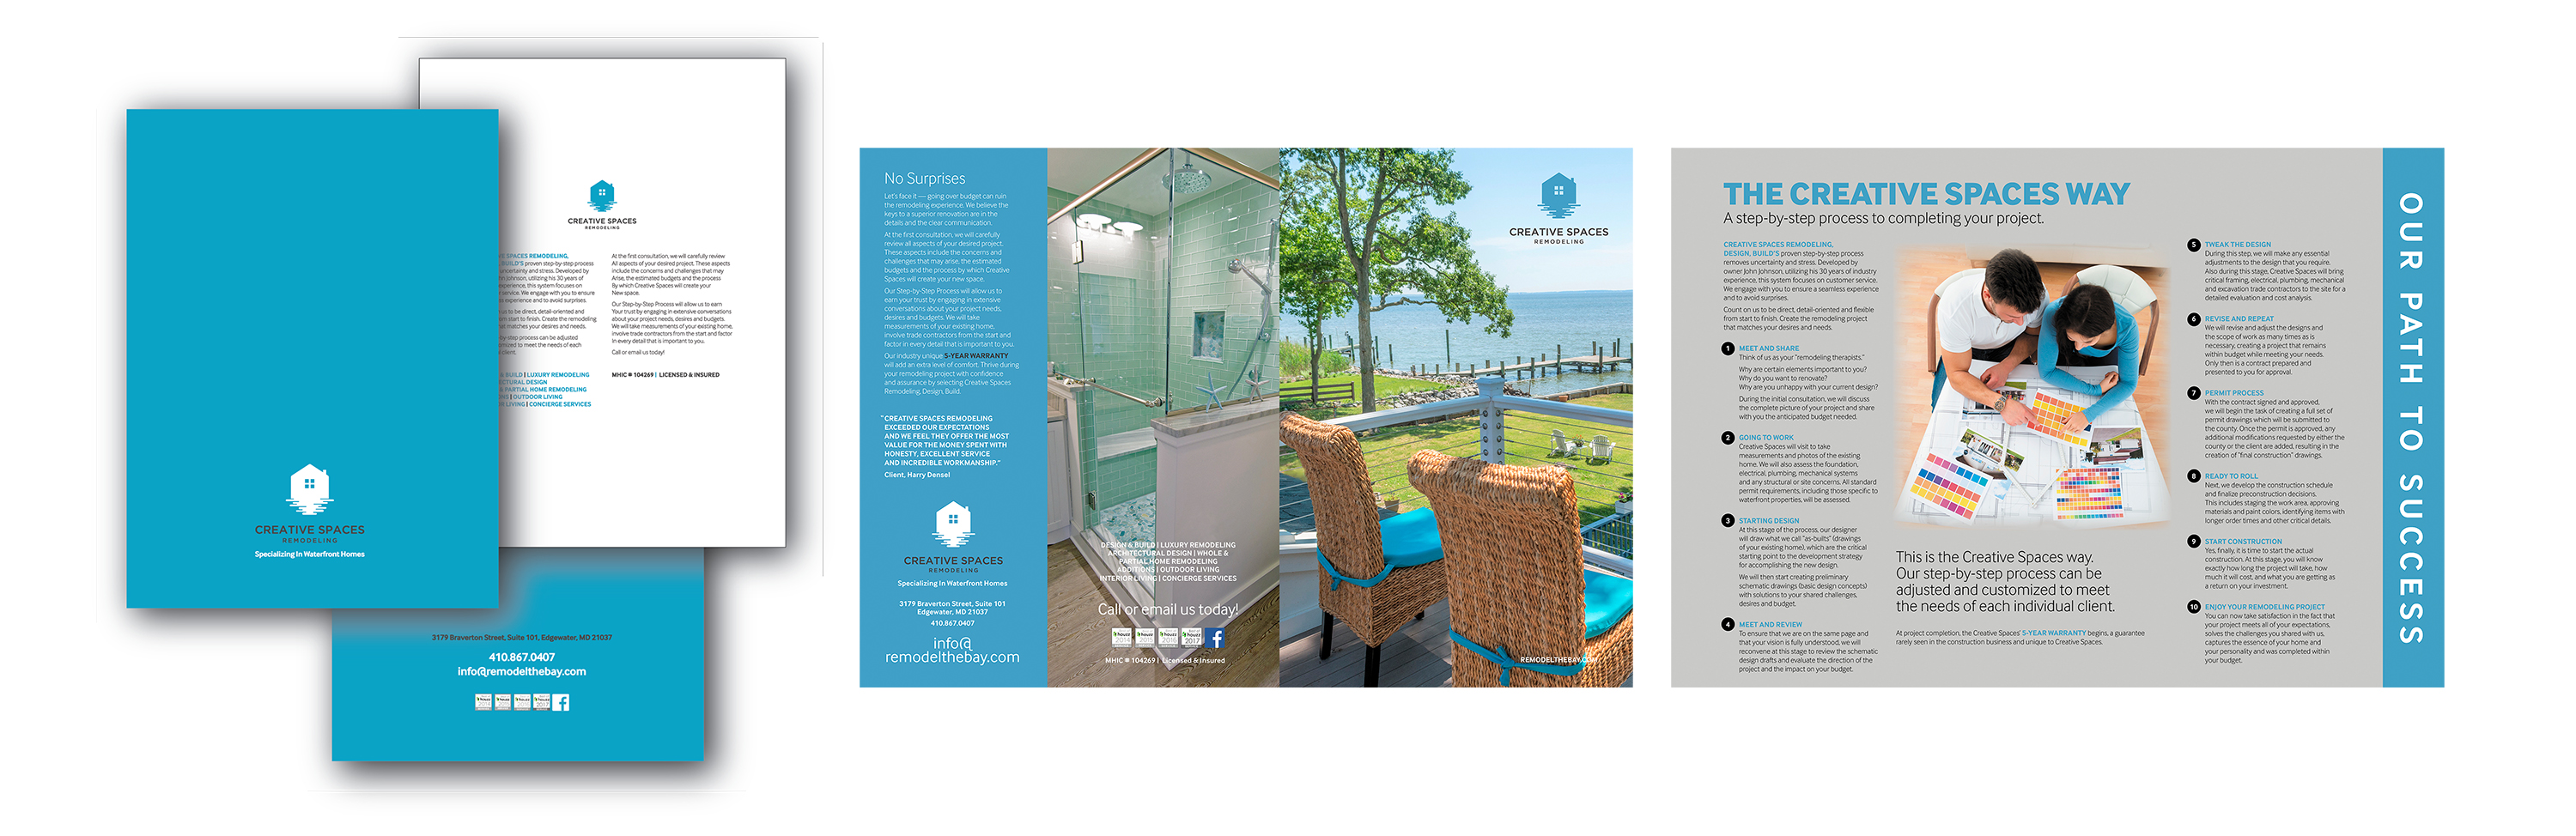 Creative Spaces Folder and Brochure